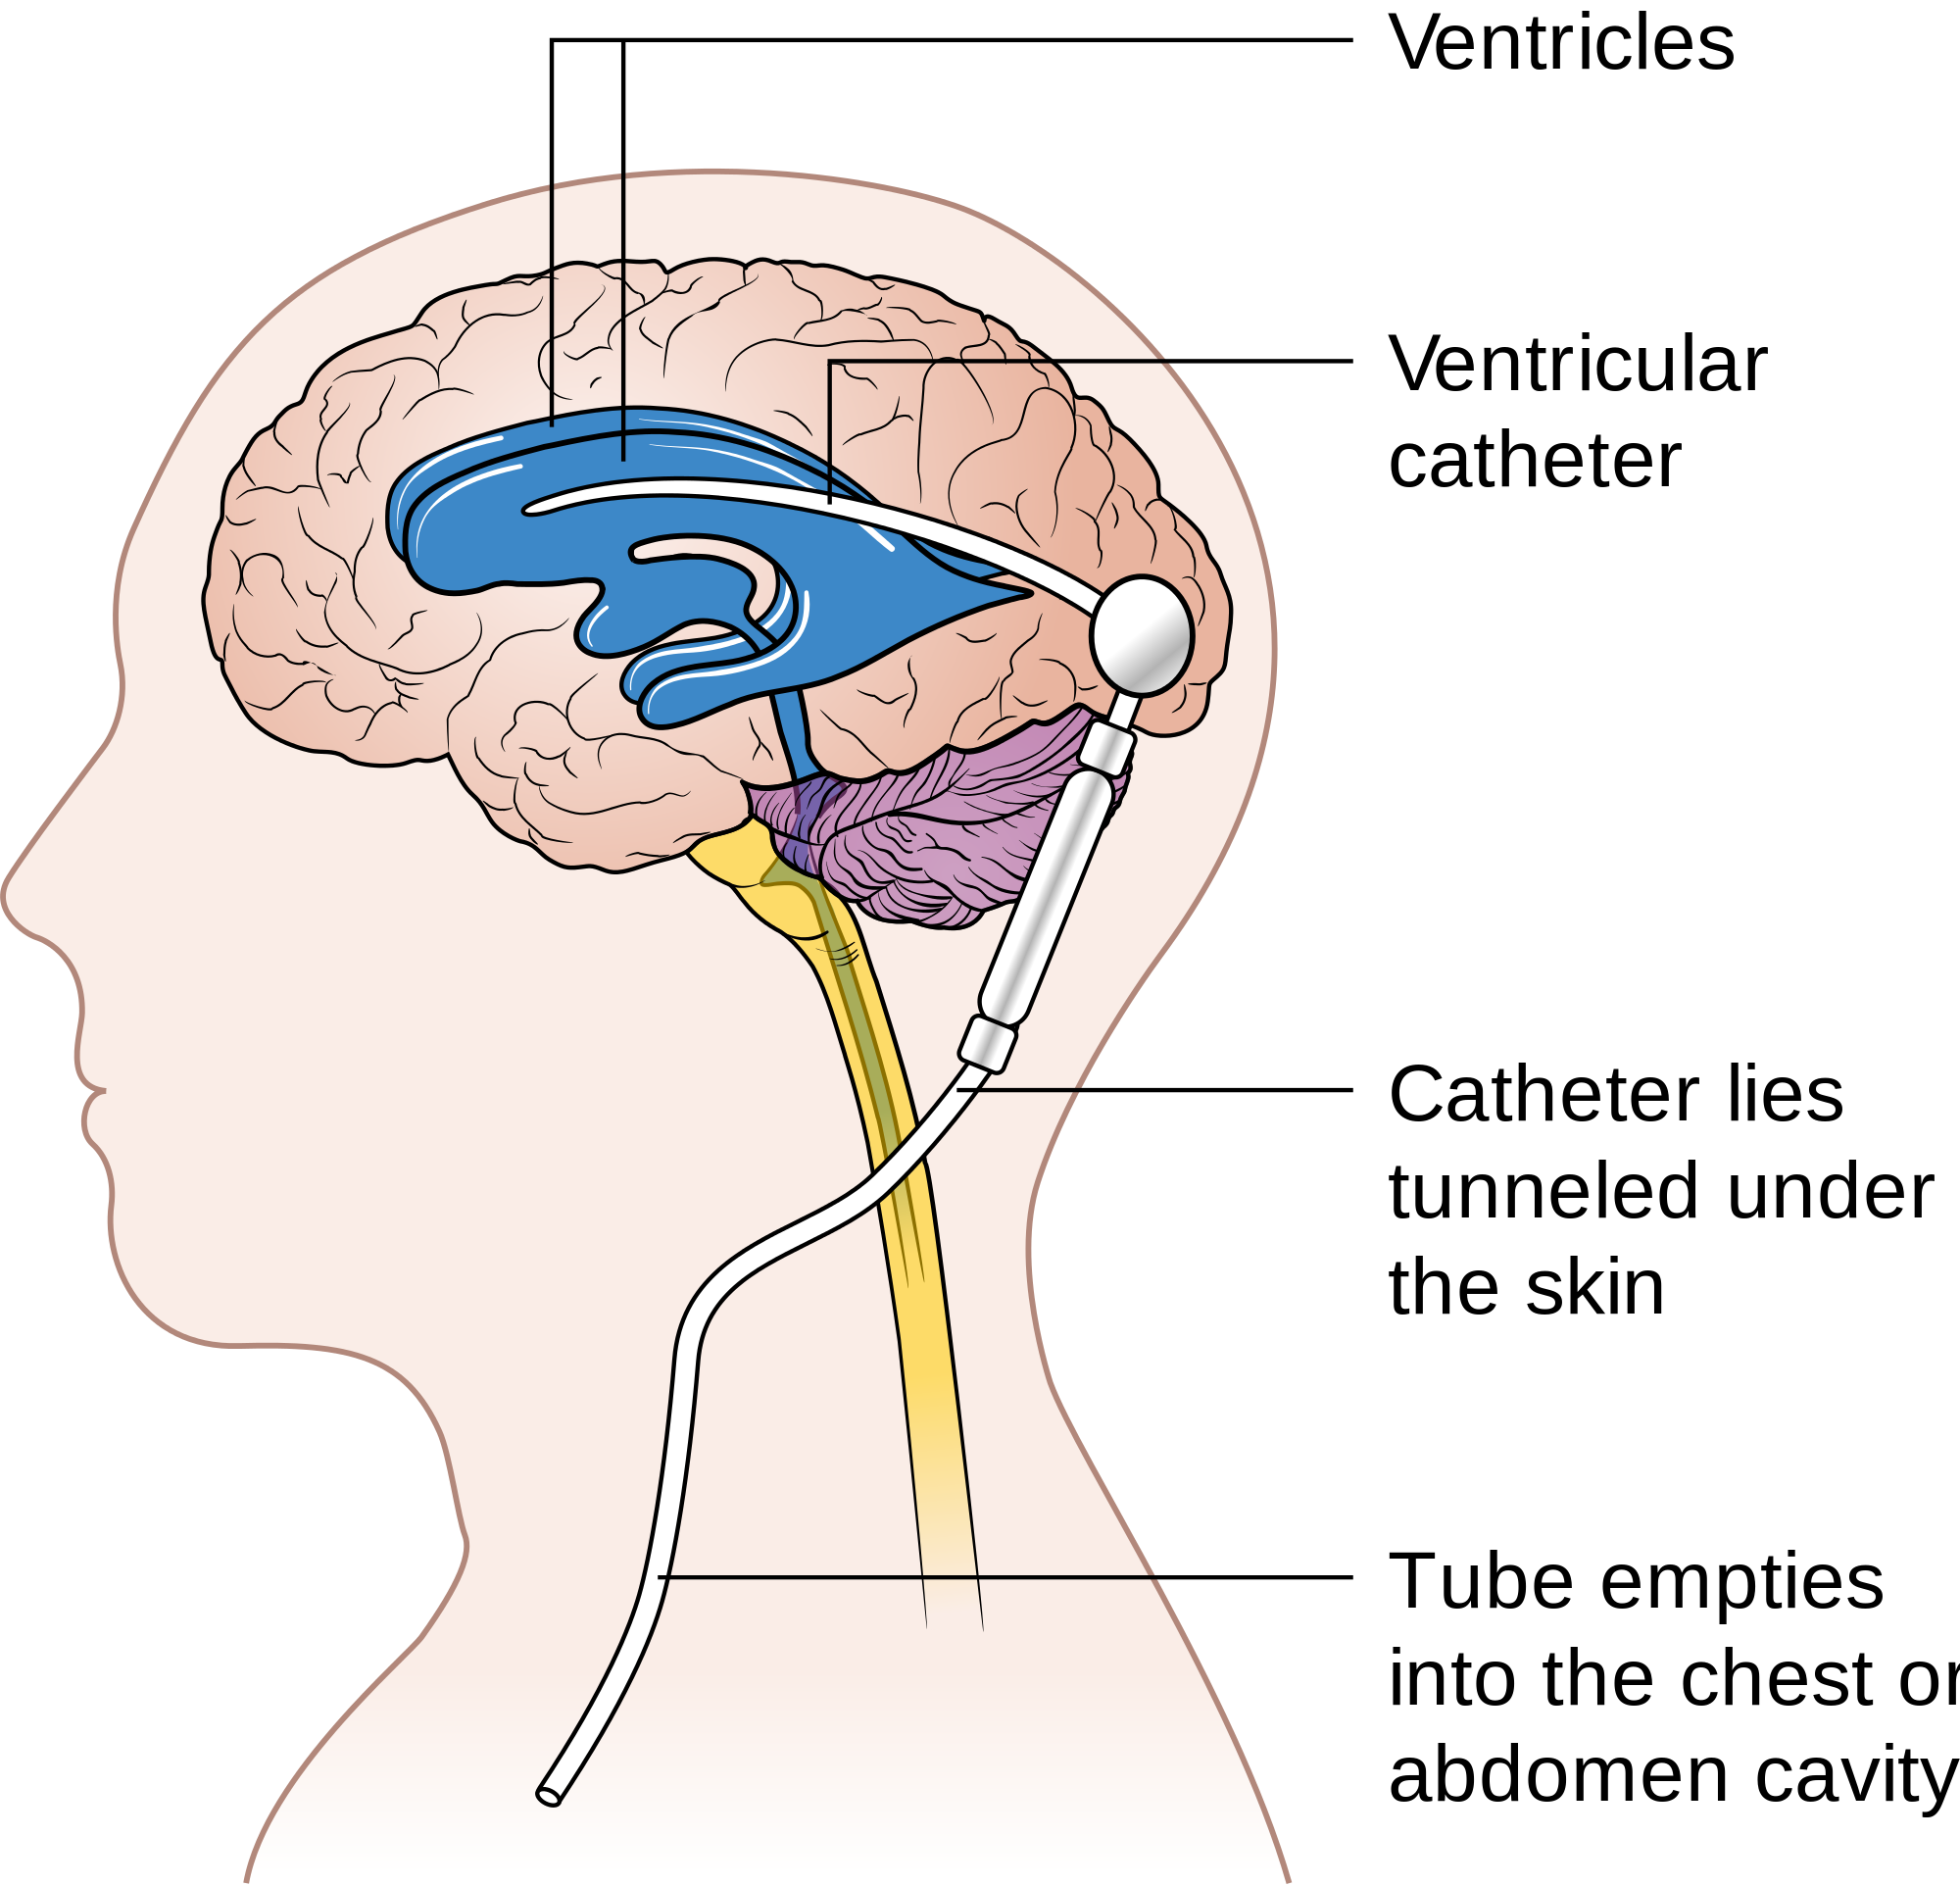 What are some symptoms of fluid on the brain?